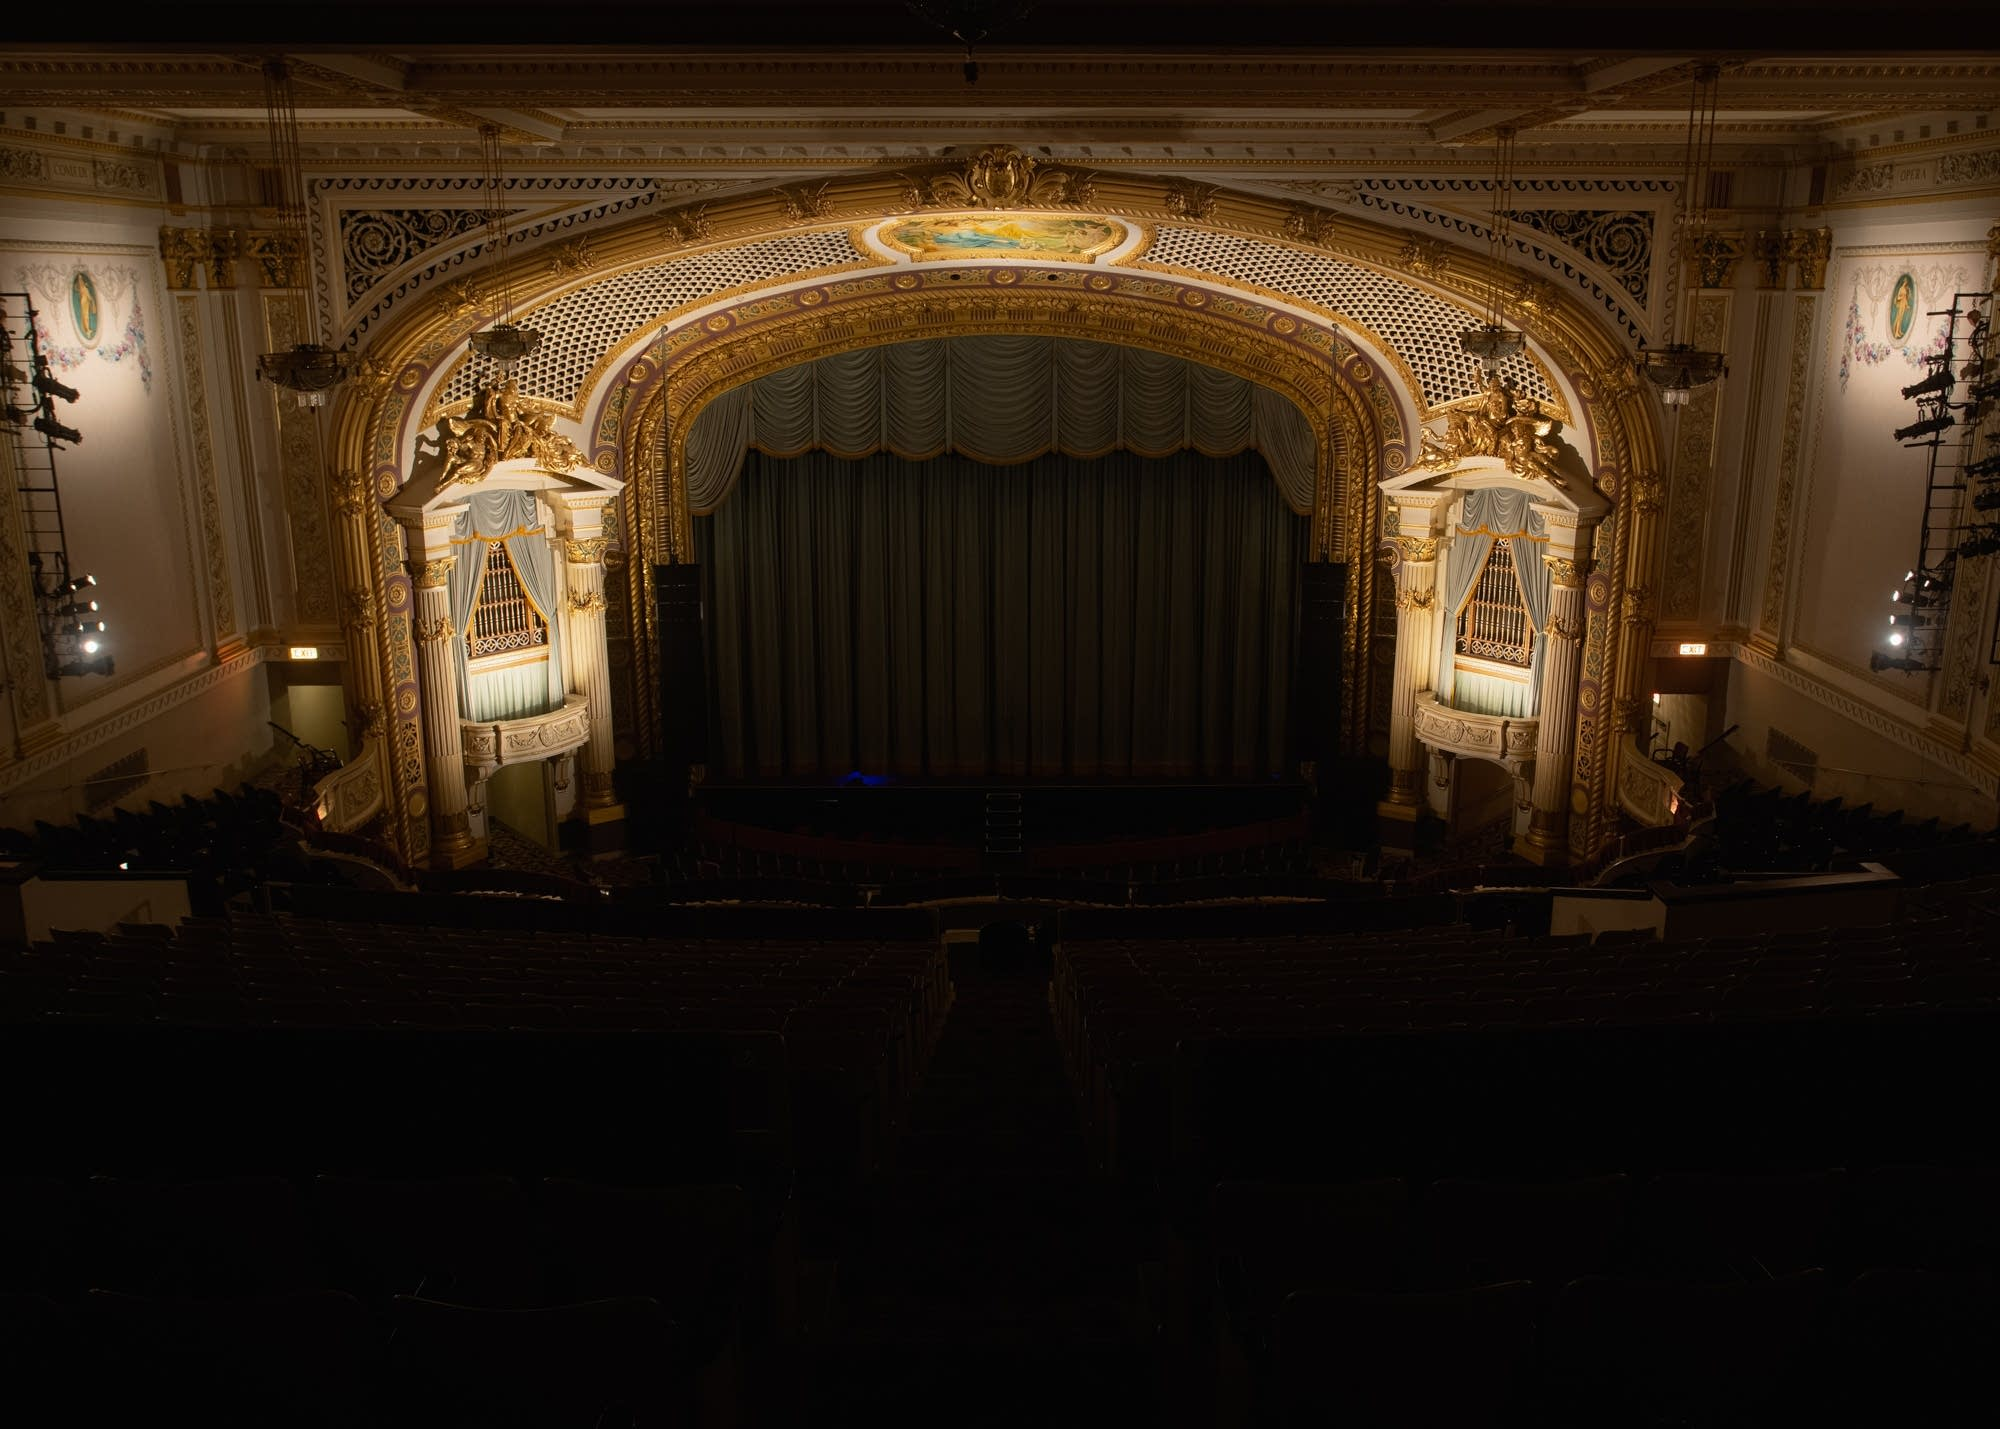 The State Theatre auditorium is lit, but the curtain-shrouded stage is dark